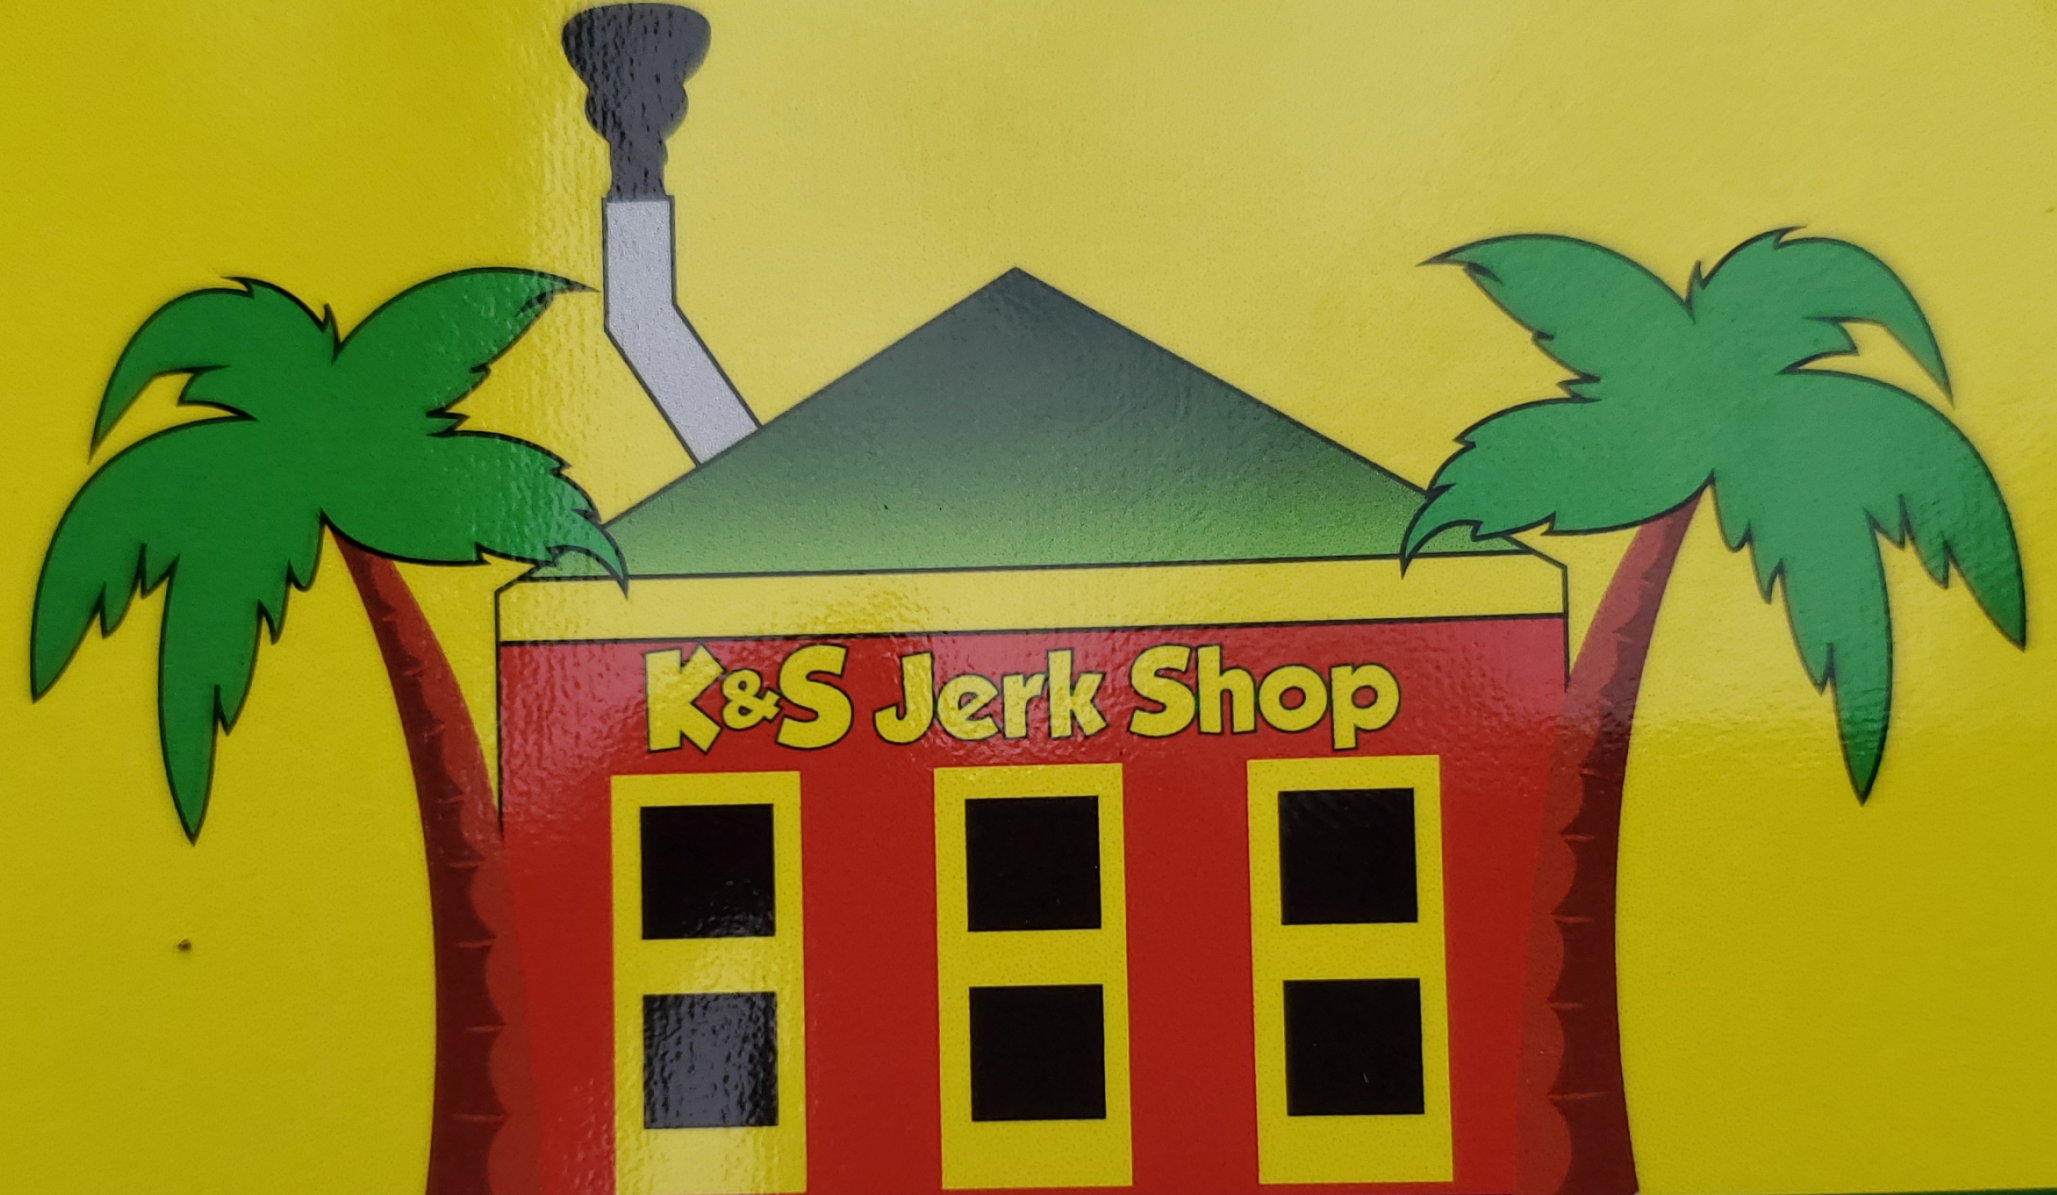 K&S Jerk Shop